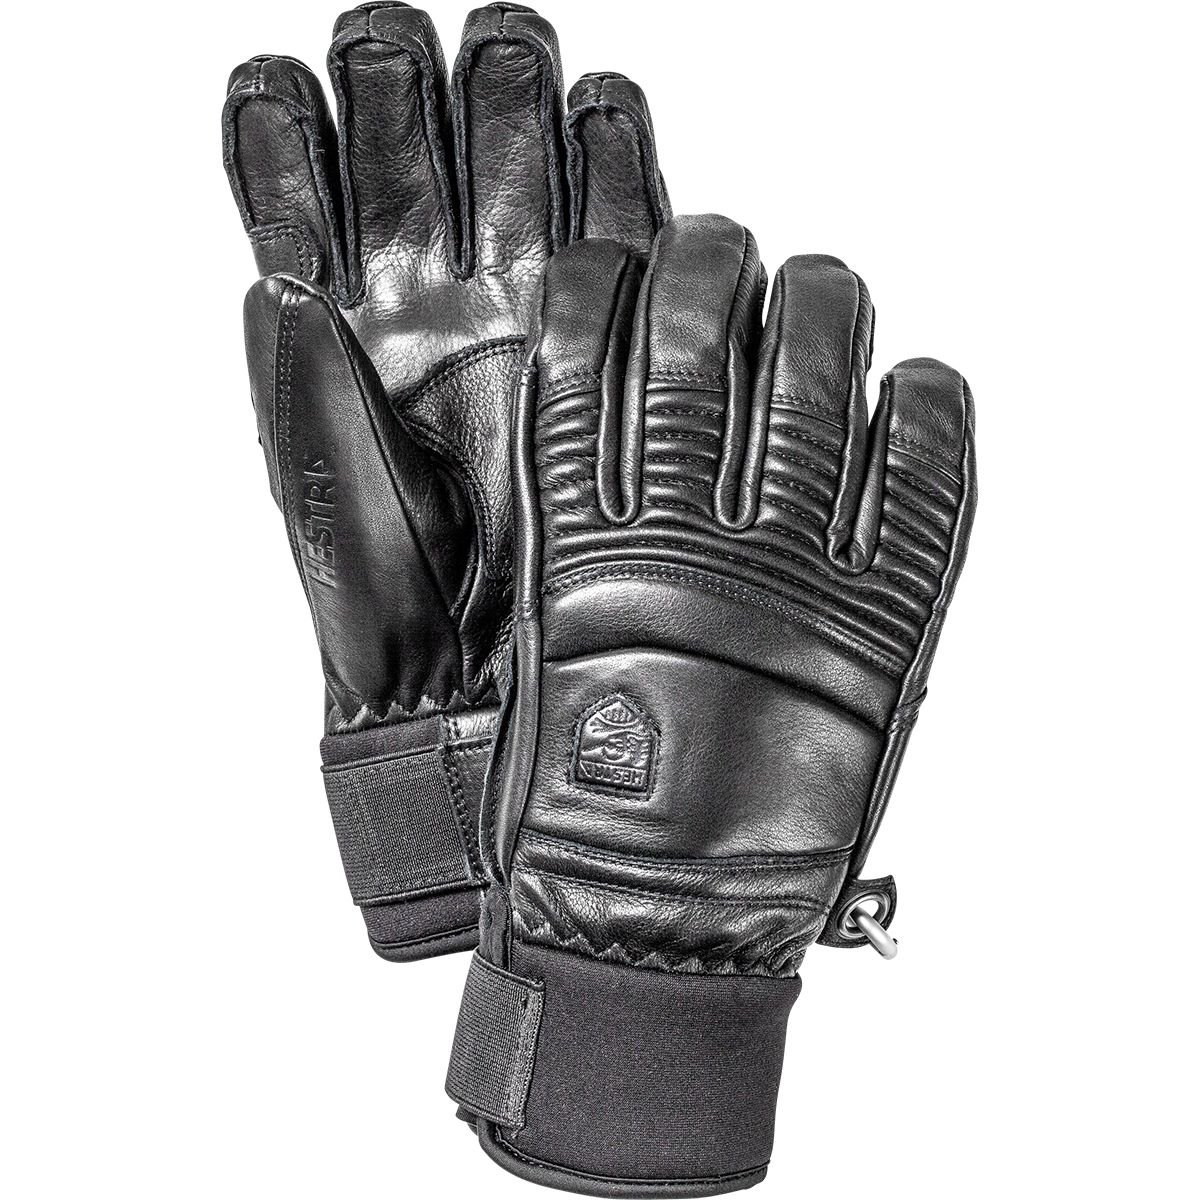 Hestra Leather Fall Line Handschuhe Schwarz L, M